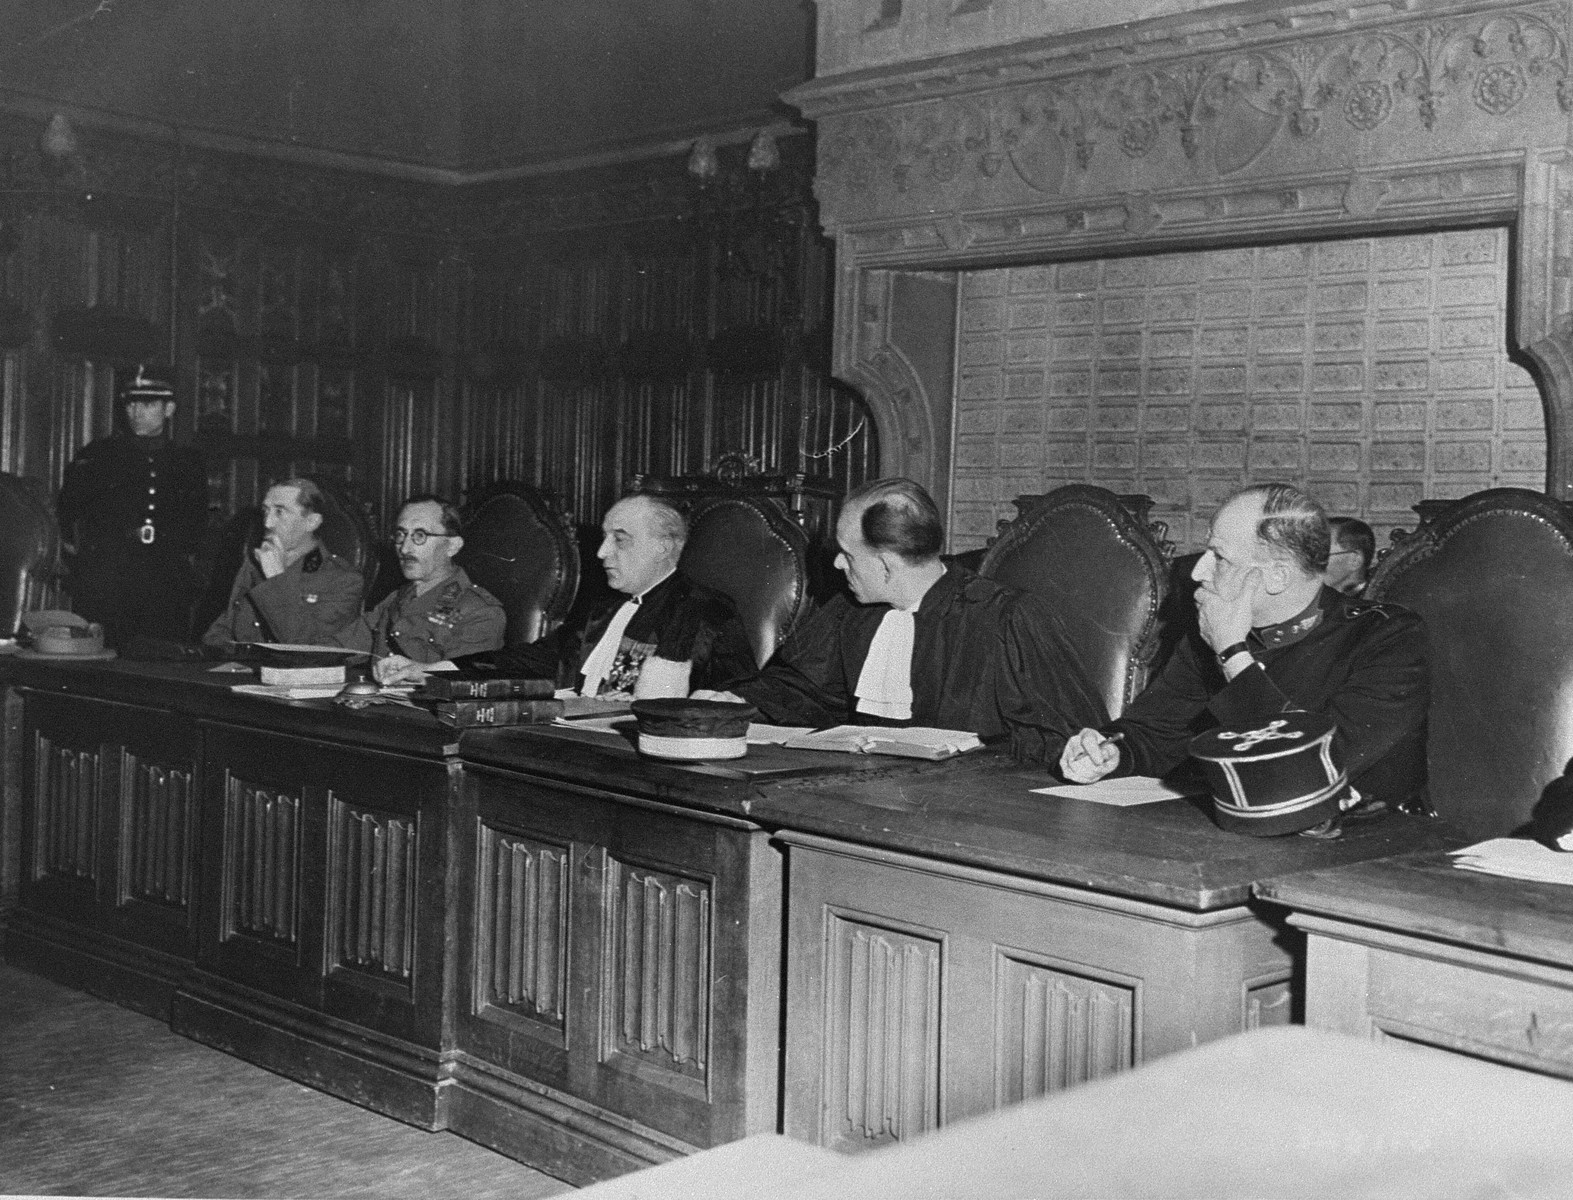 The members of a Belgian court hear the charges against five women accused of collaborating with the Germans during the occupation.